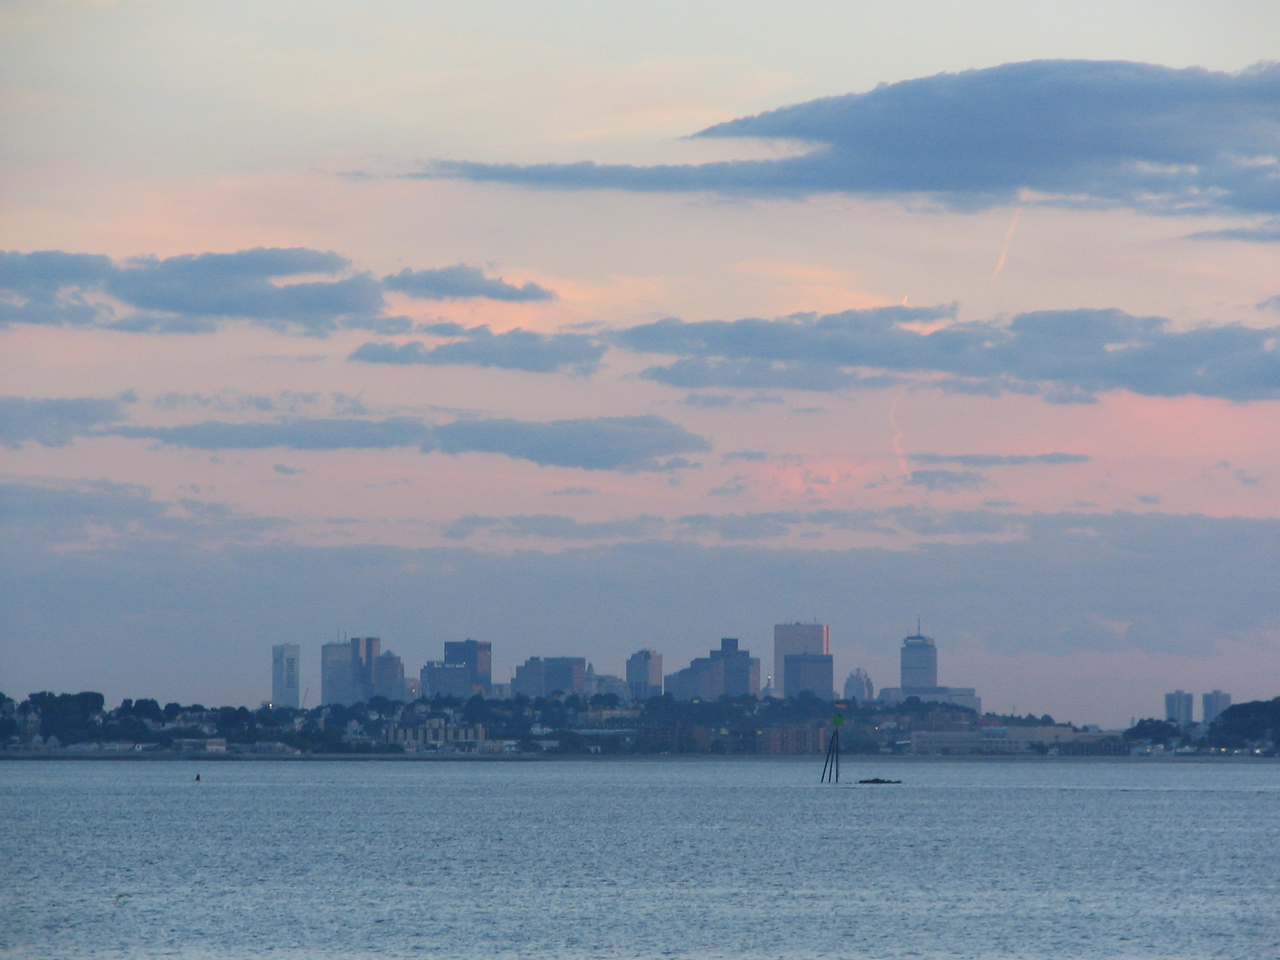 Boston skyline taken from Nahant Causeway